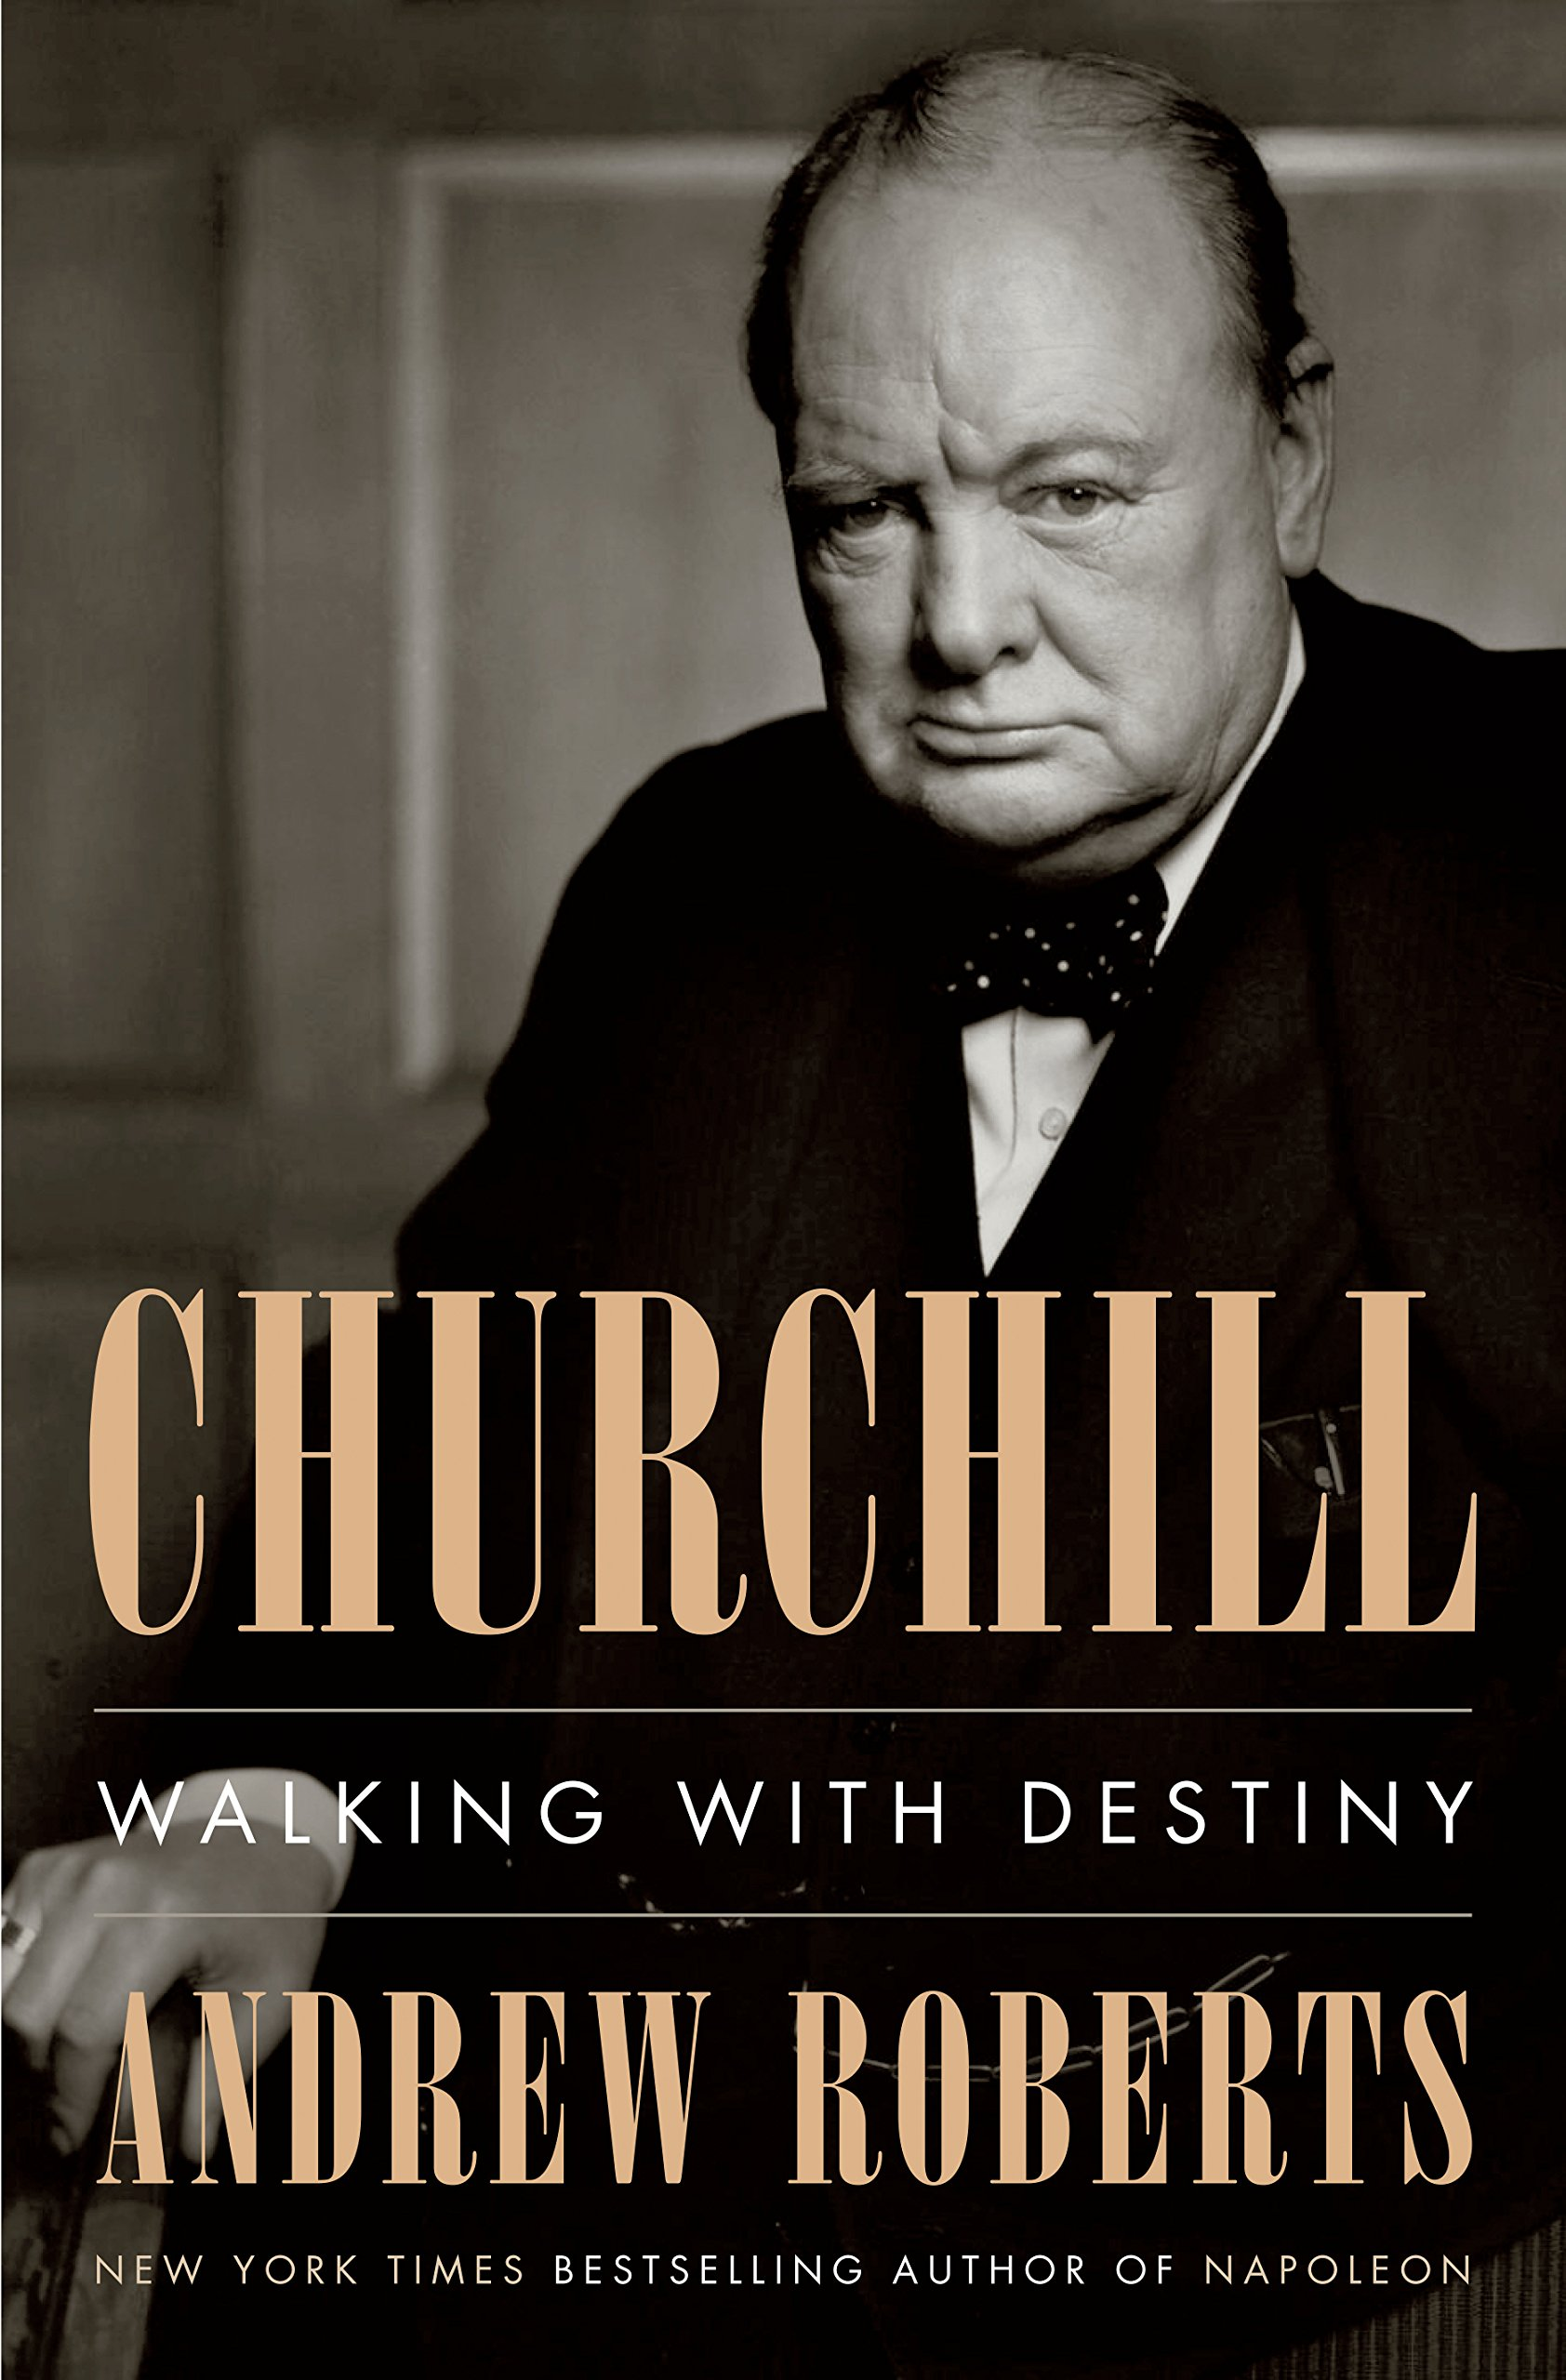 Image result for churchill walking with destiny book